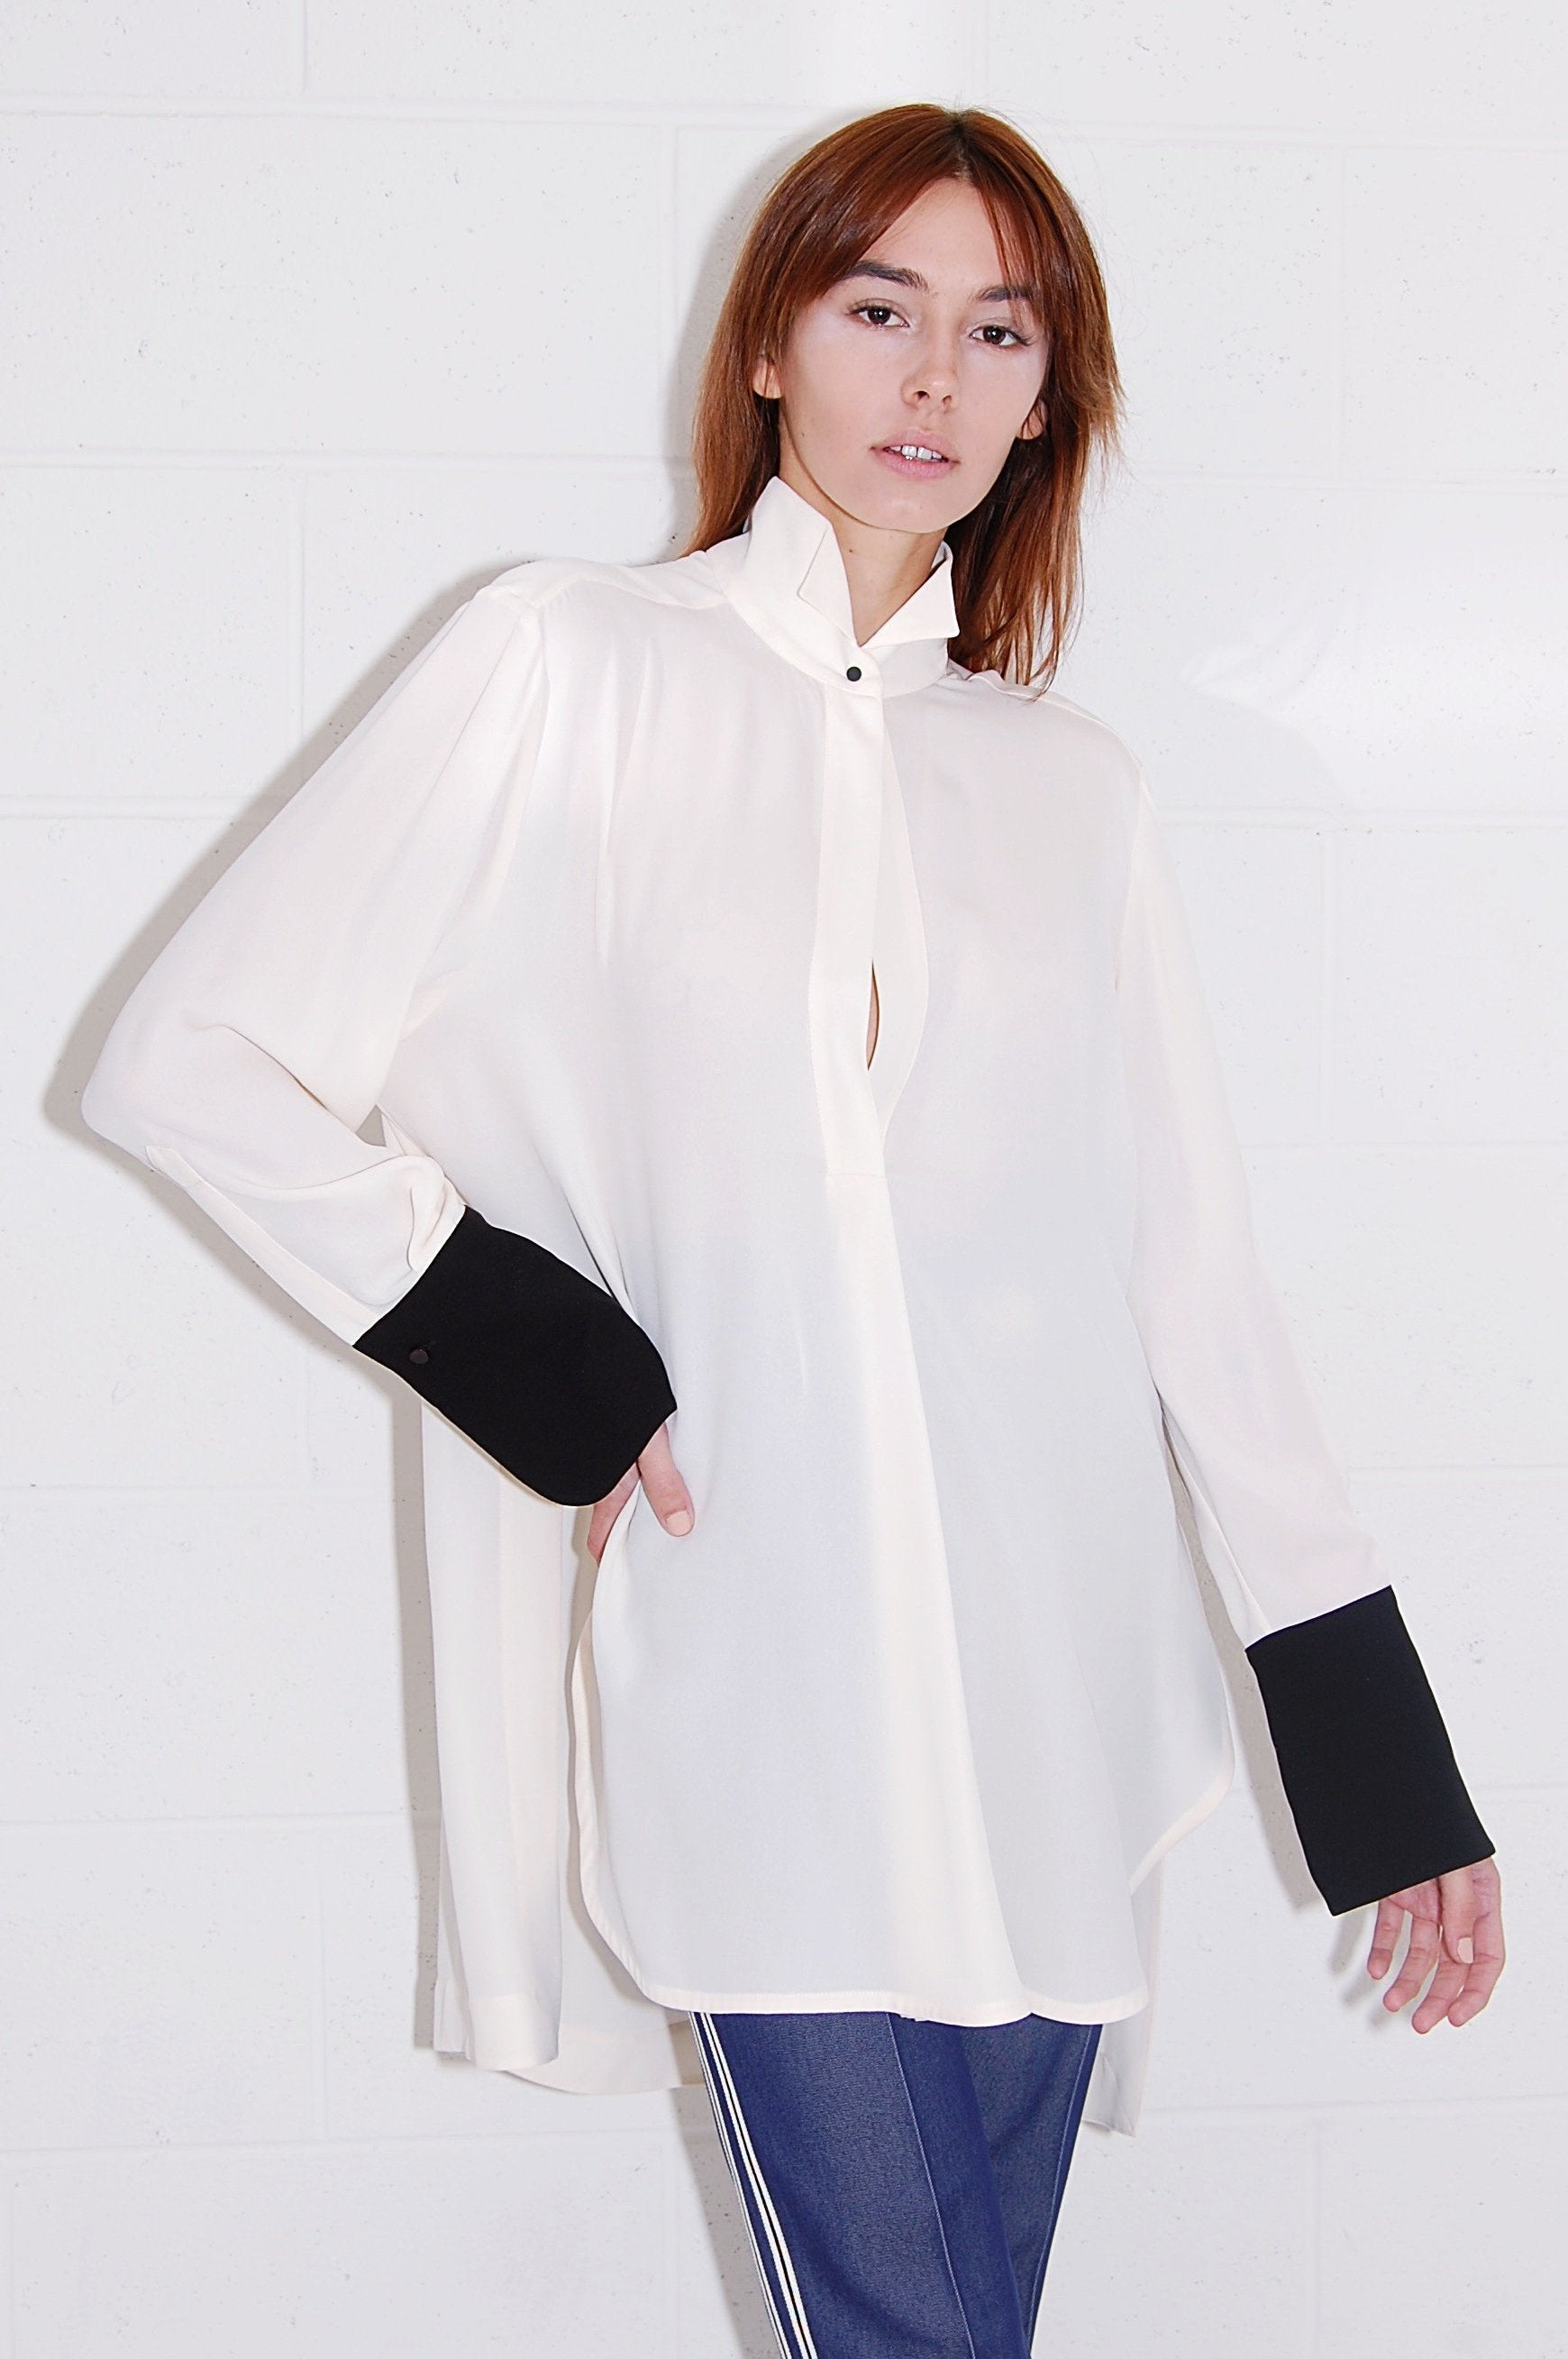 eecd7b04f547 Petar Petrov Crepe White Blouse with Wingtip Collar and Black Cuffs ...